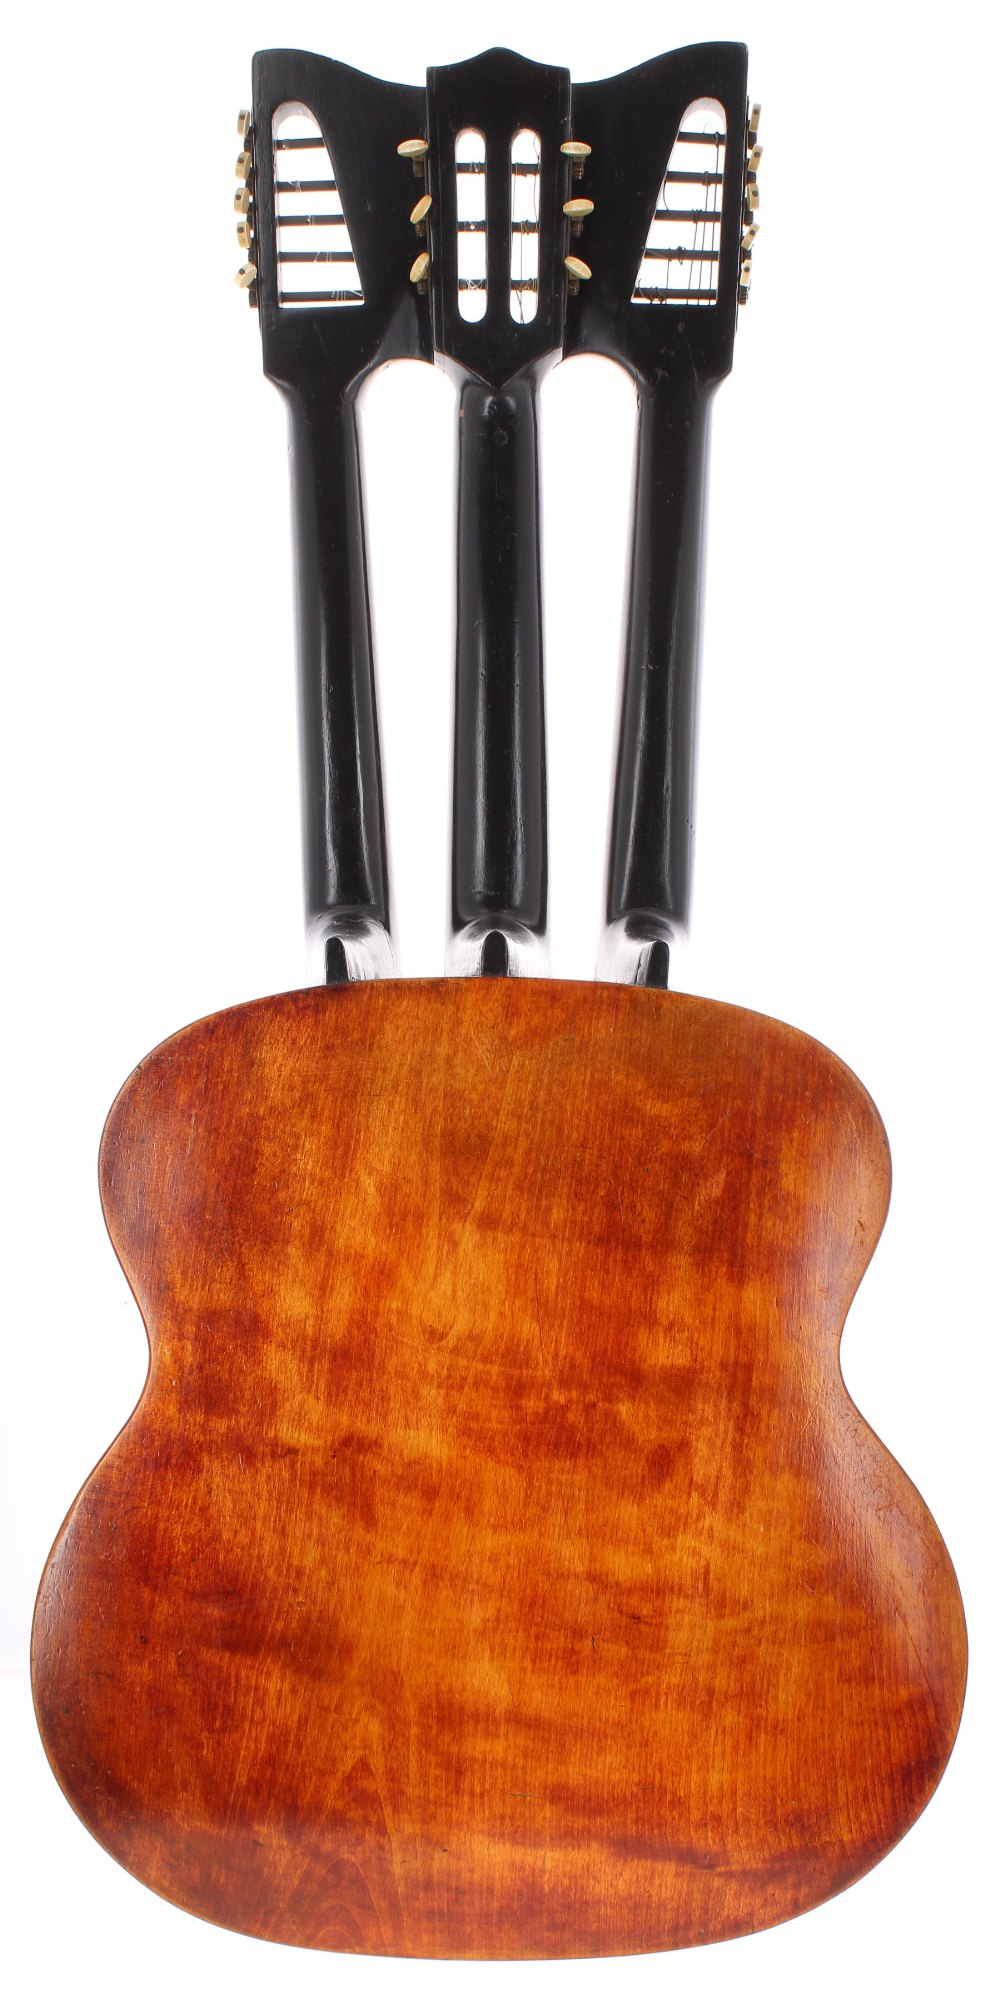 Triple-necked guitar in the style of Bernard Enzensperger, the one piece back and ribs of - Image 2 of 2